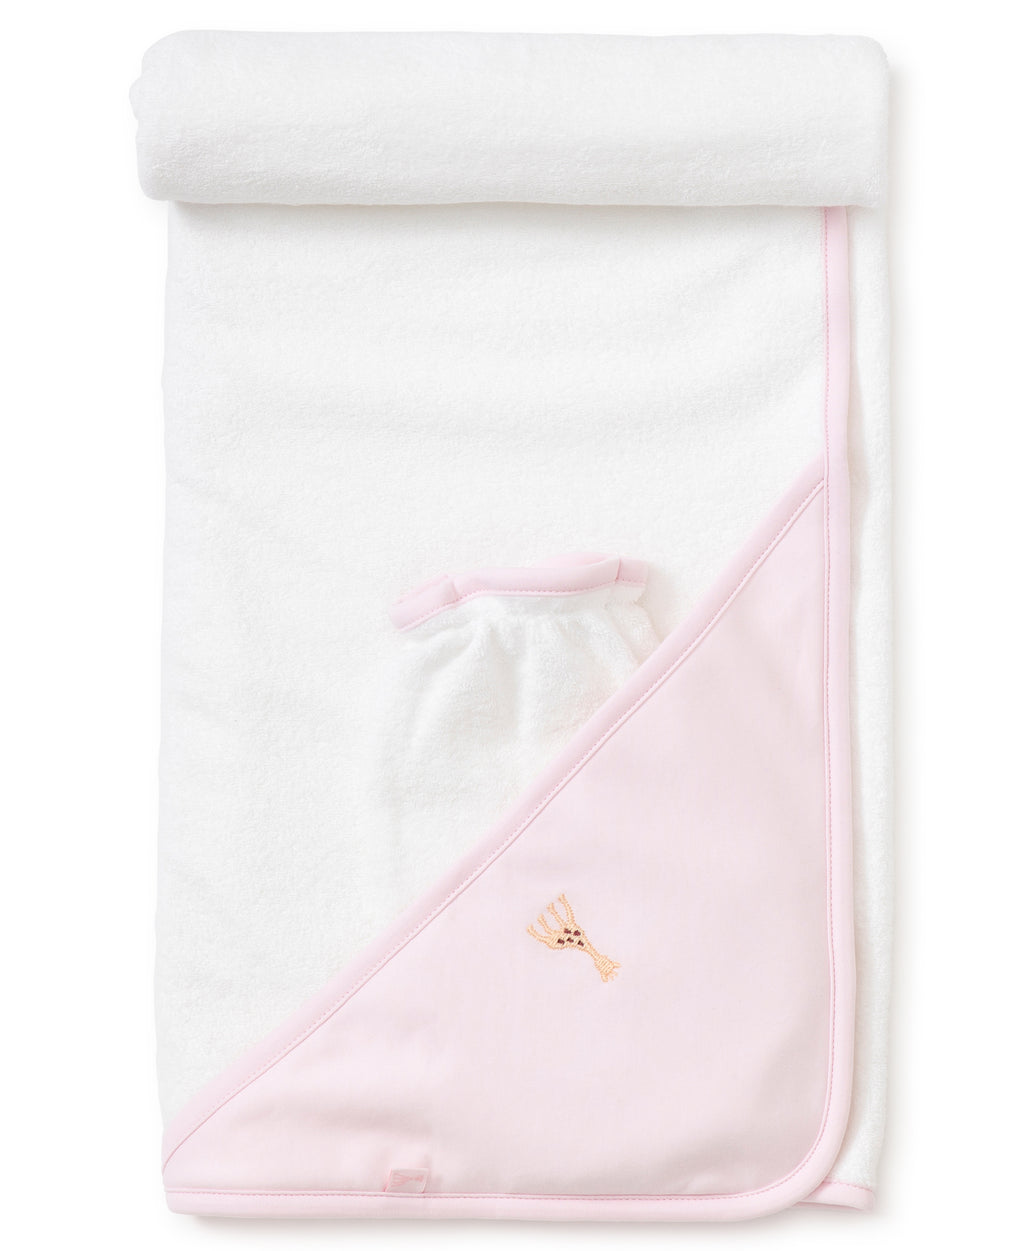 Sophie la girafe Pink Hooded Towel & Mitt Set